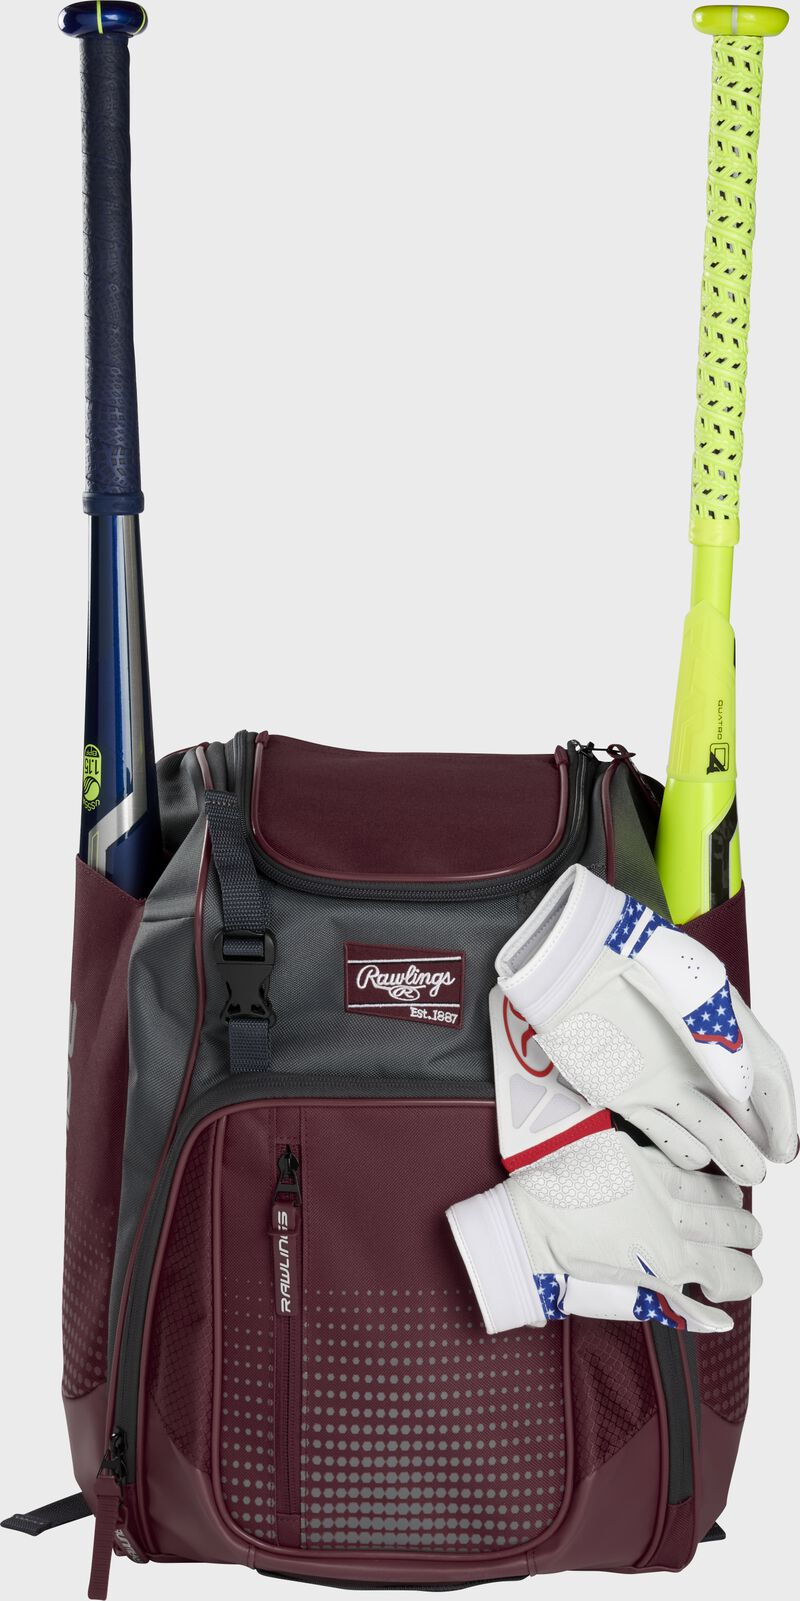 A maroon Franchise backpack with two bats in the sides and batting gloves on the front Velcro strap - SKU: FRANBP-MA